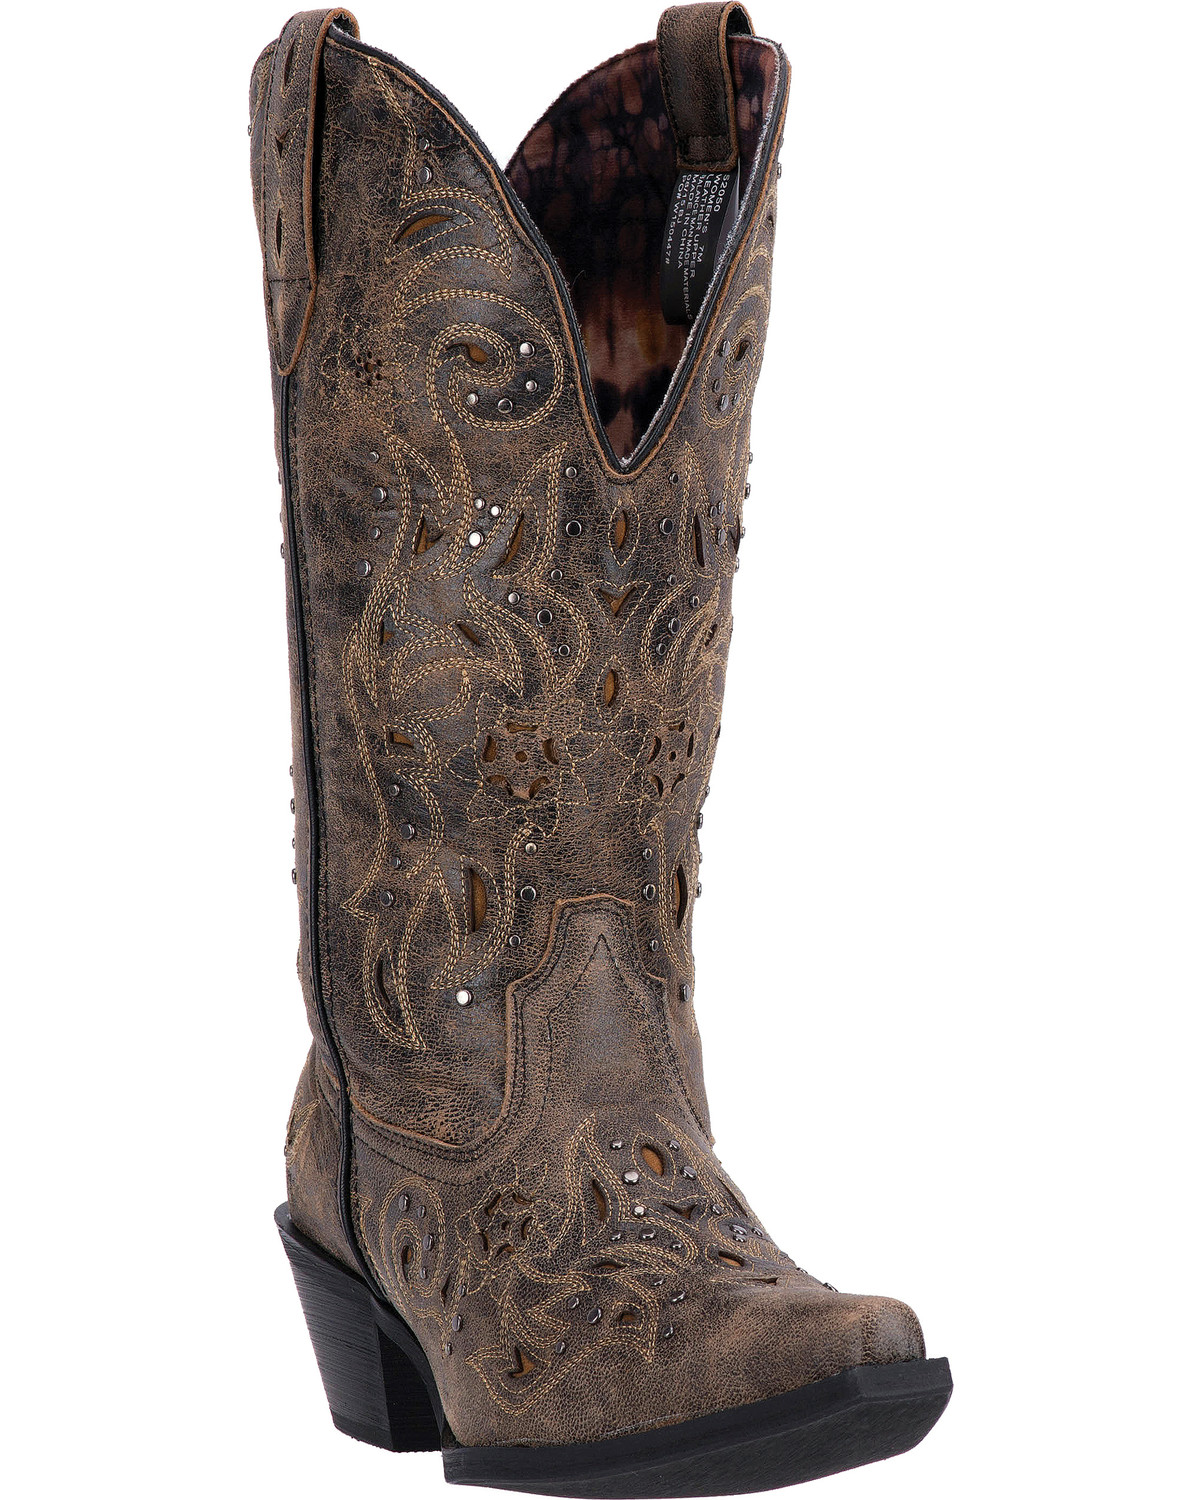 guide post boot womens boots comfortable trading sierra comforter the western cowboy most